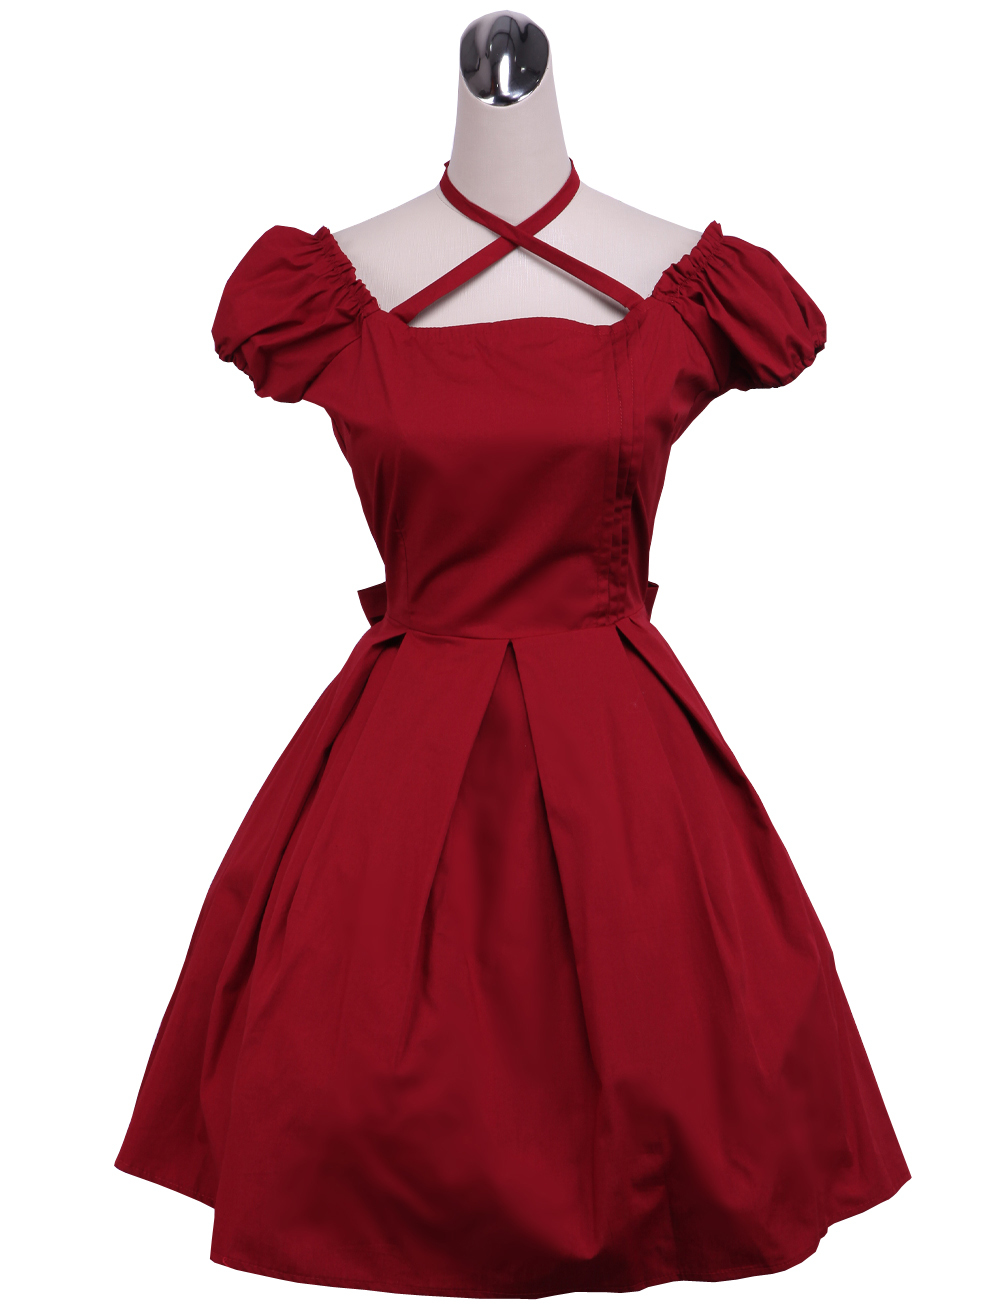 Primary image for ZeroMart Red Cotton Back Bow Retro Gothic Classic School Lolita Dress